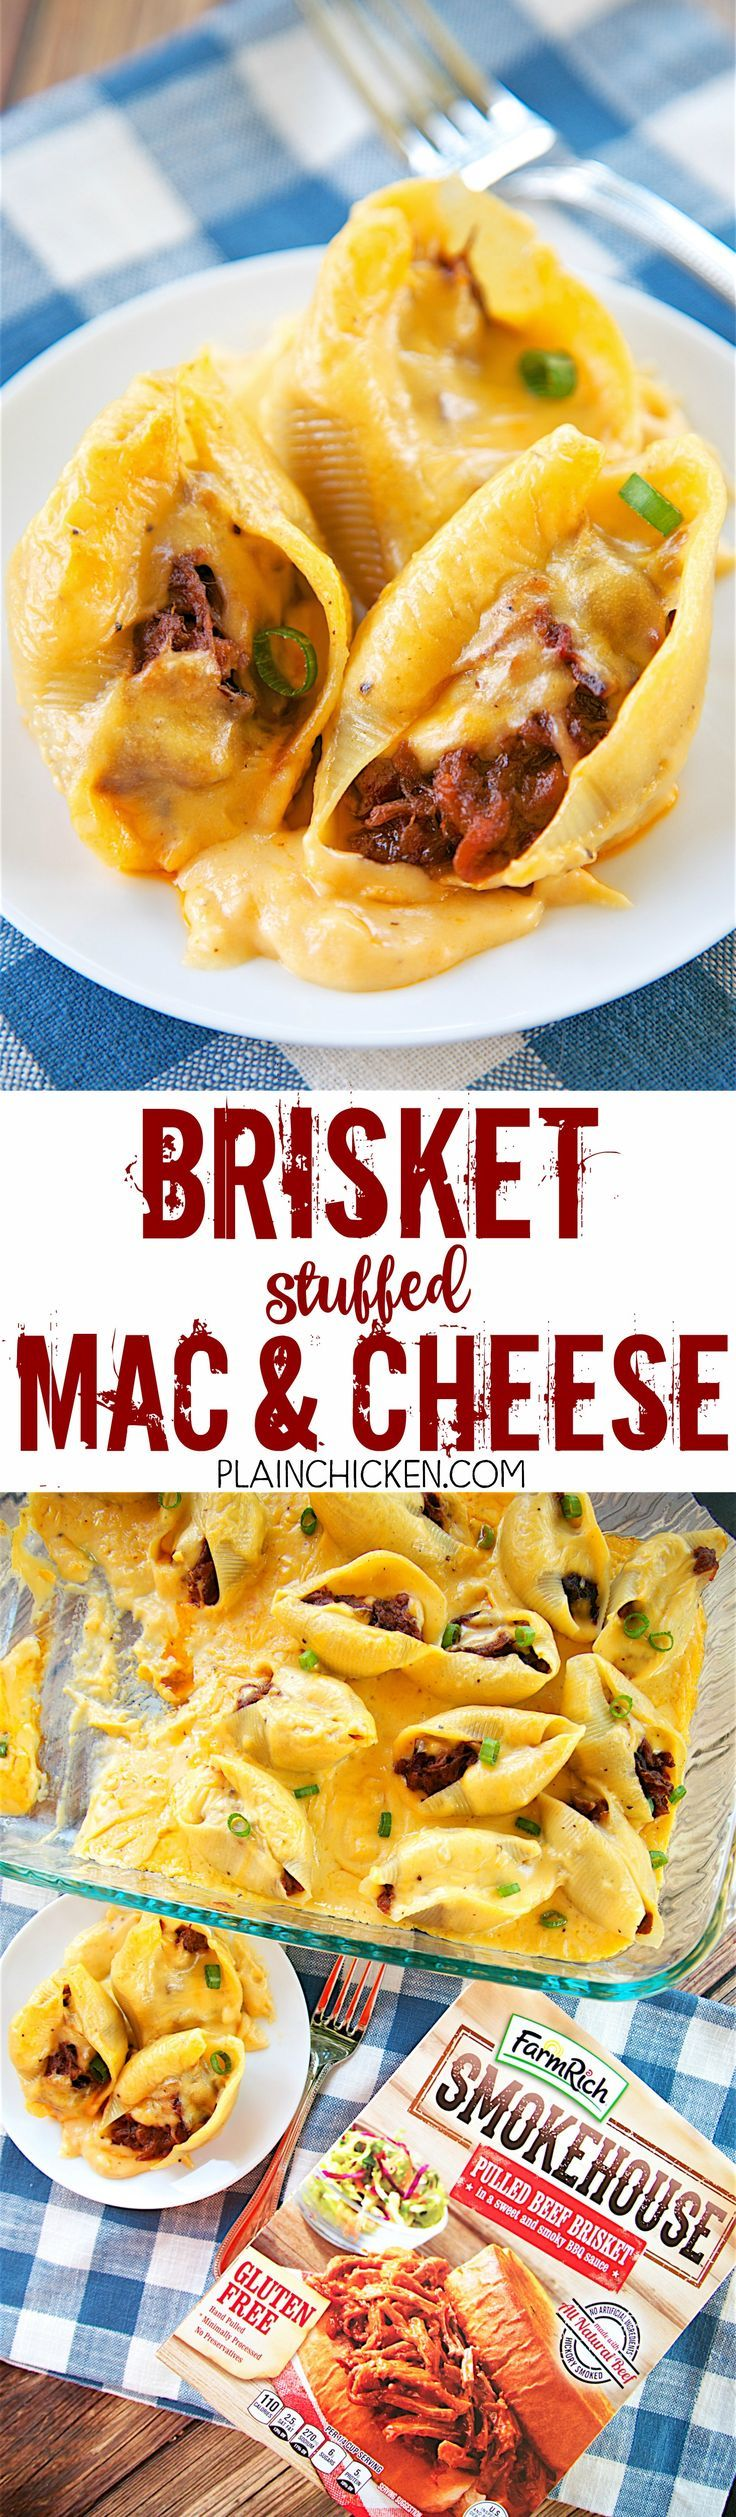 Brisket Stuffed Mac and Cheese - CRAZY good! Jumbo pasta shells stuffed with FarmRich Smokehouse Pulled Beef Brisket and topped with a quick homemade cheese sauce (butter, flour, milk and cheese). Everyone cleaned their plate! Ready in under 30 minutes! We made it twice in one week! SO good!